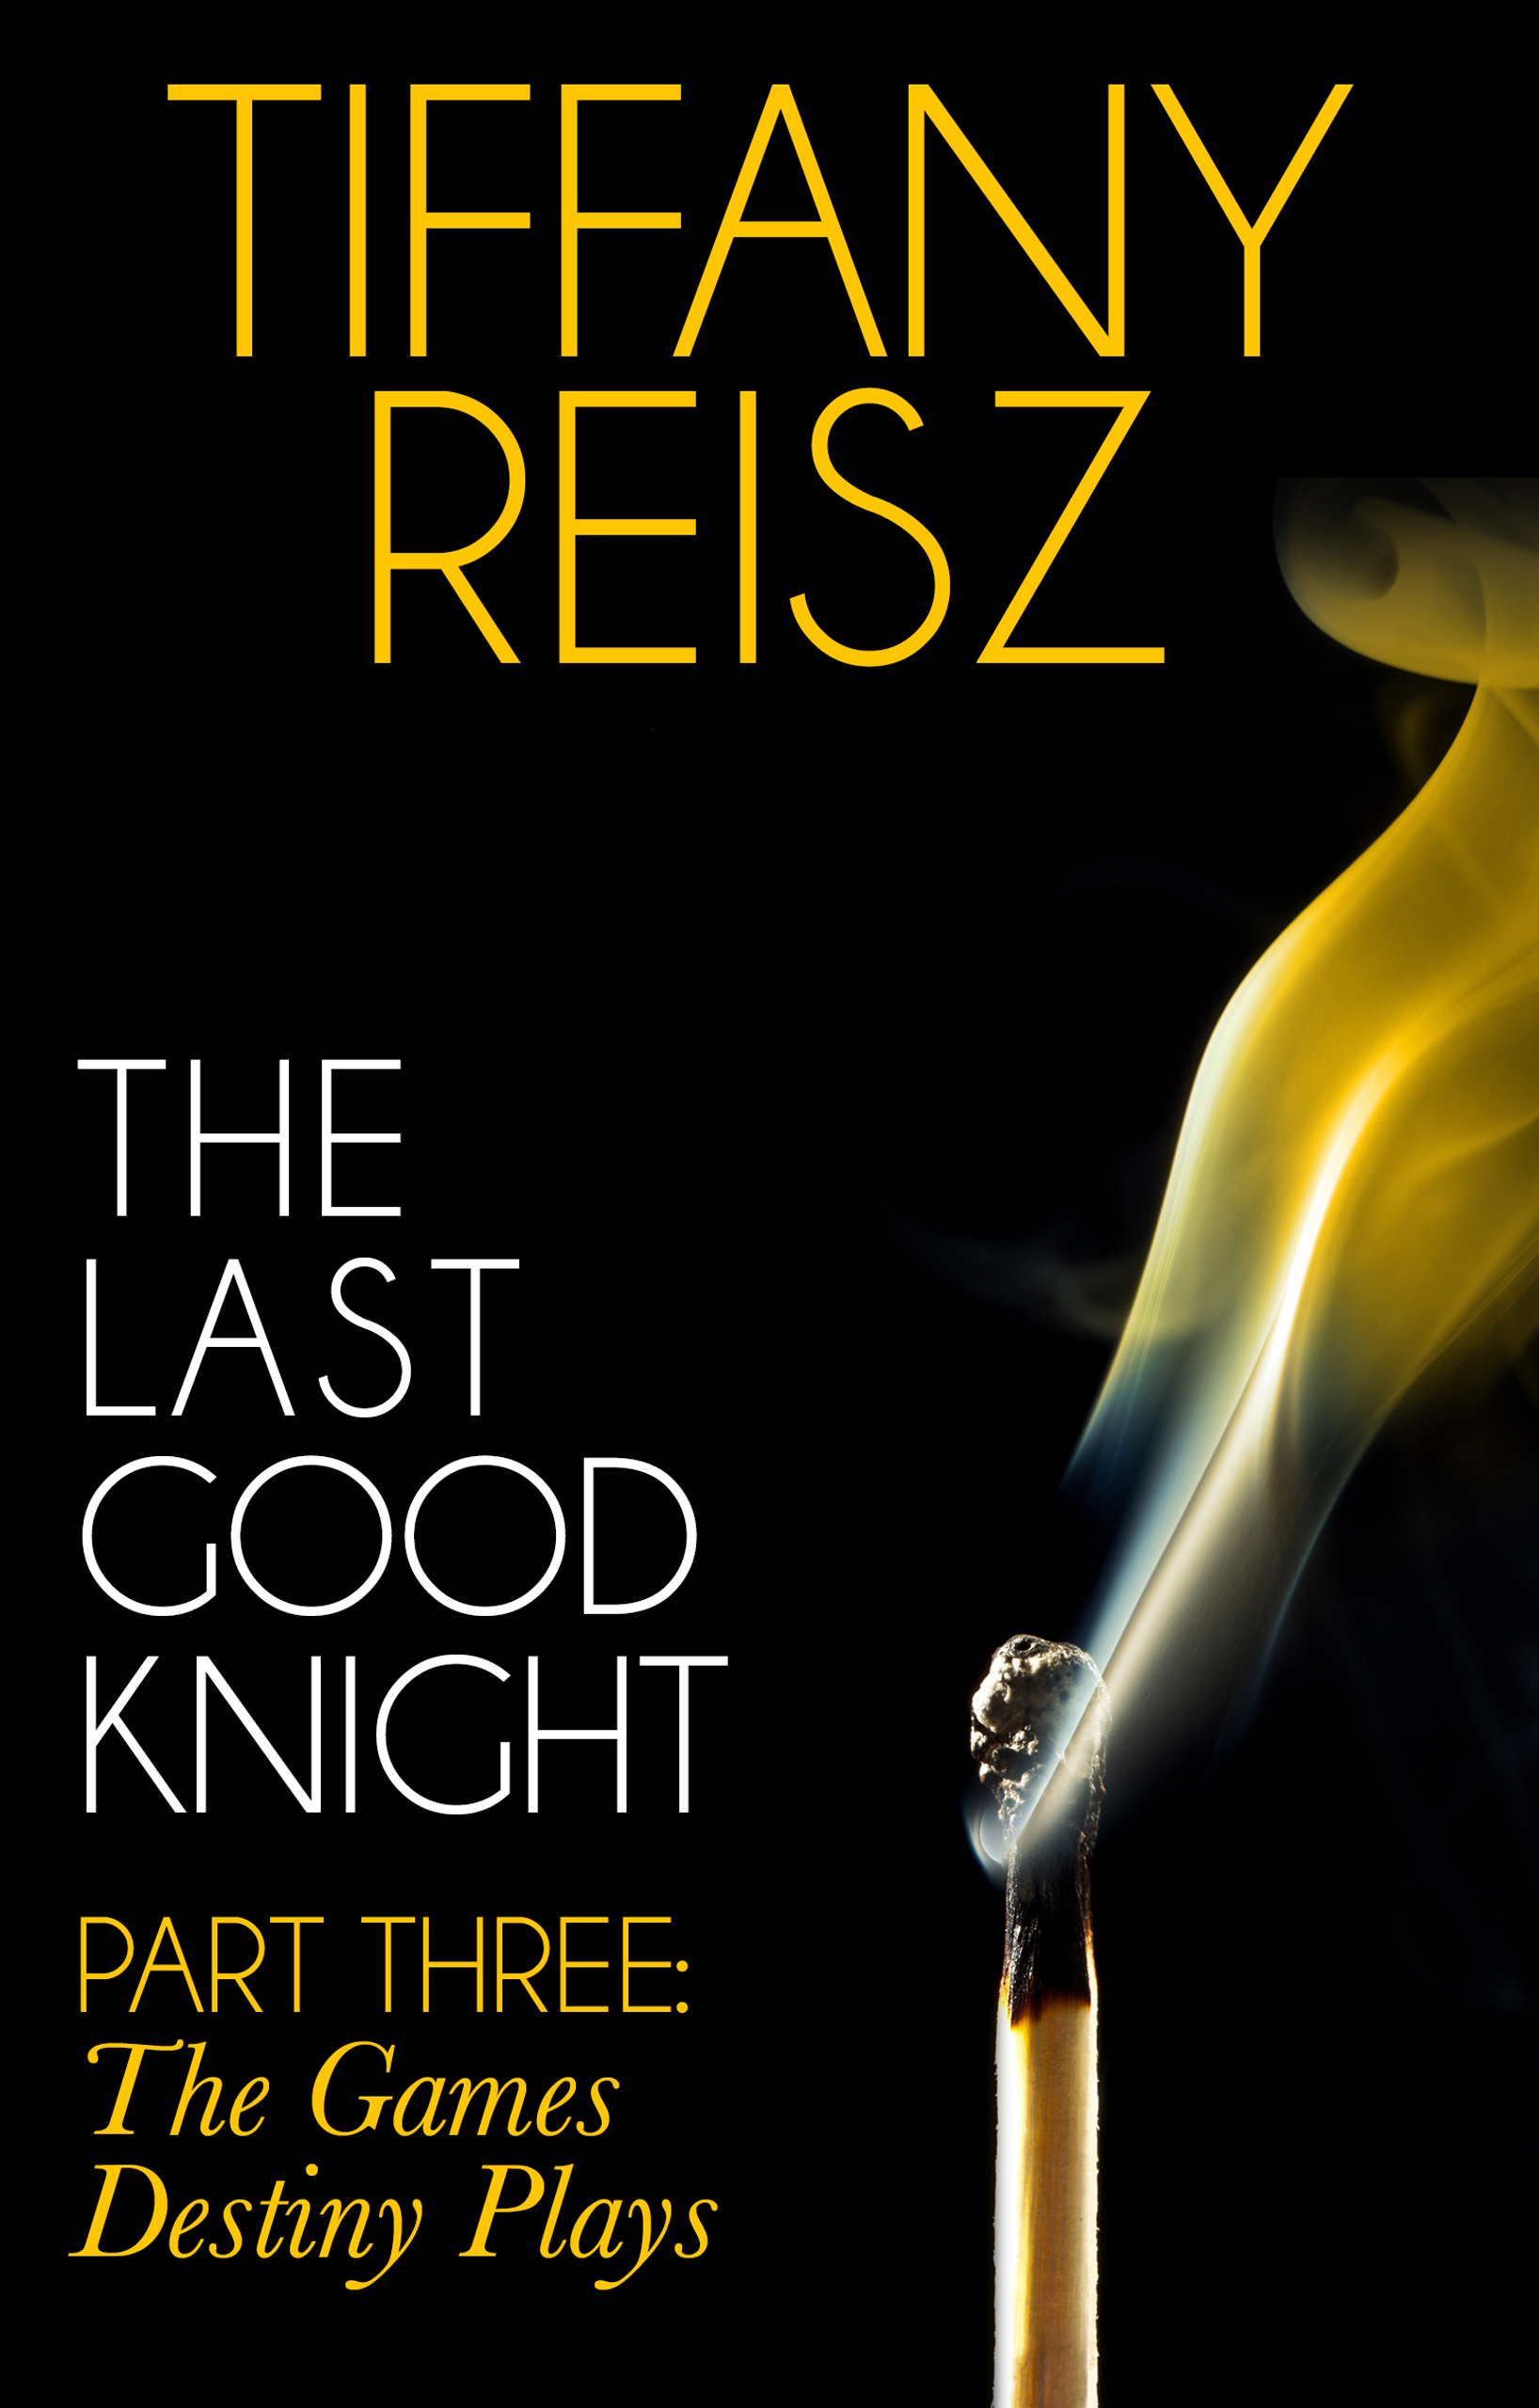 The Last Good Knight Part III: The Games Destiny Plays (Mills & Boon Spice) (The Original Sinners: The Red Years - short story)